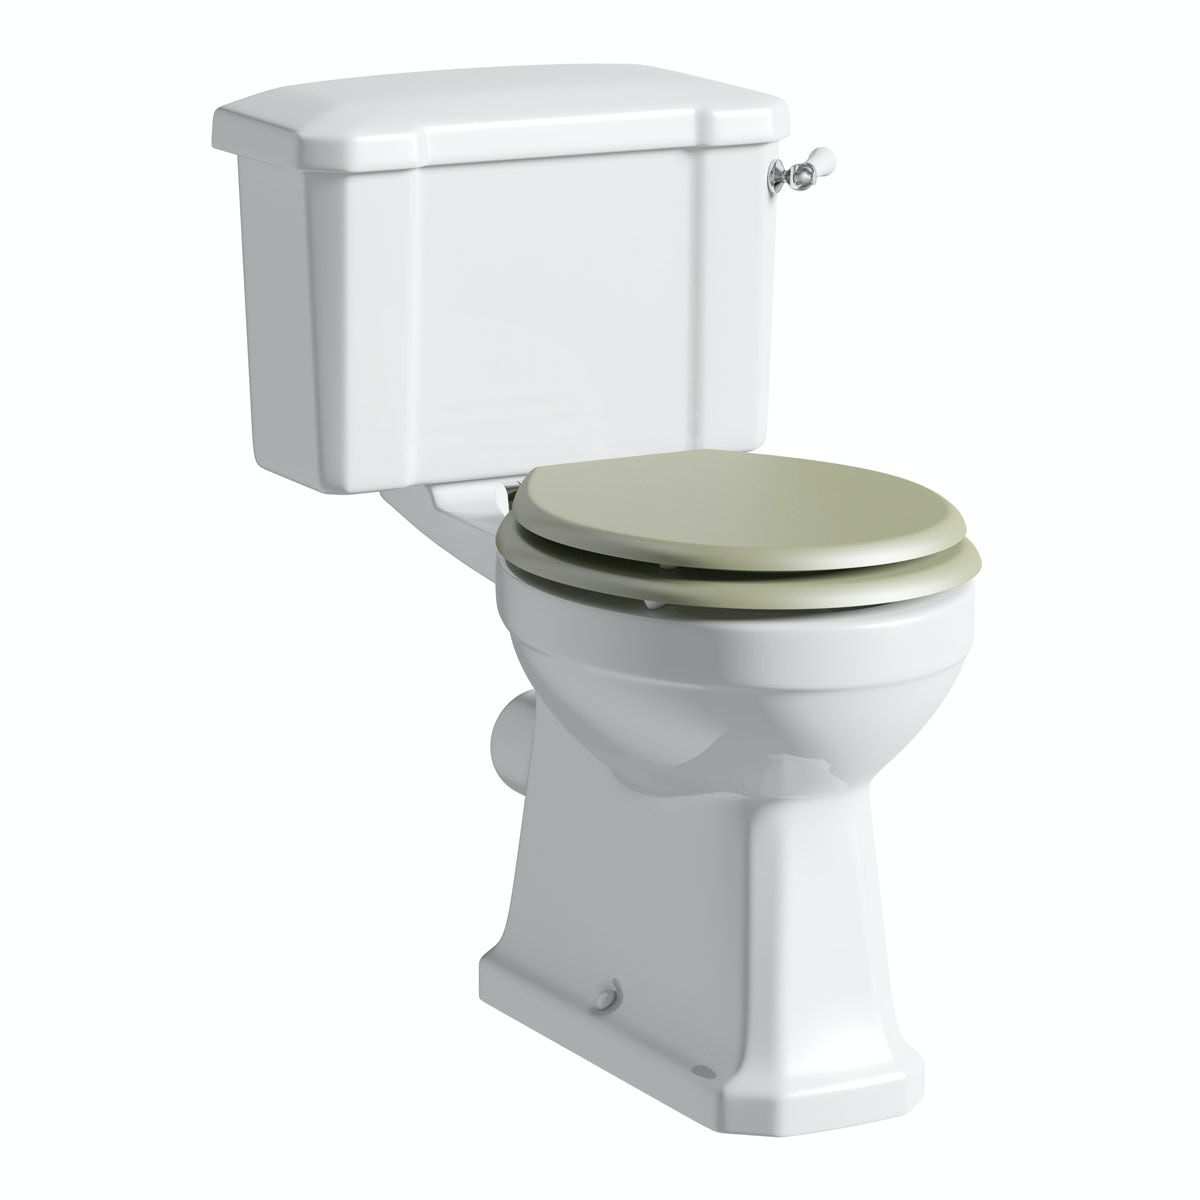 The Bath Co. Camberley close coupled toilet inc sage soft close seat